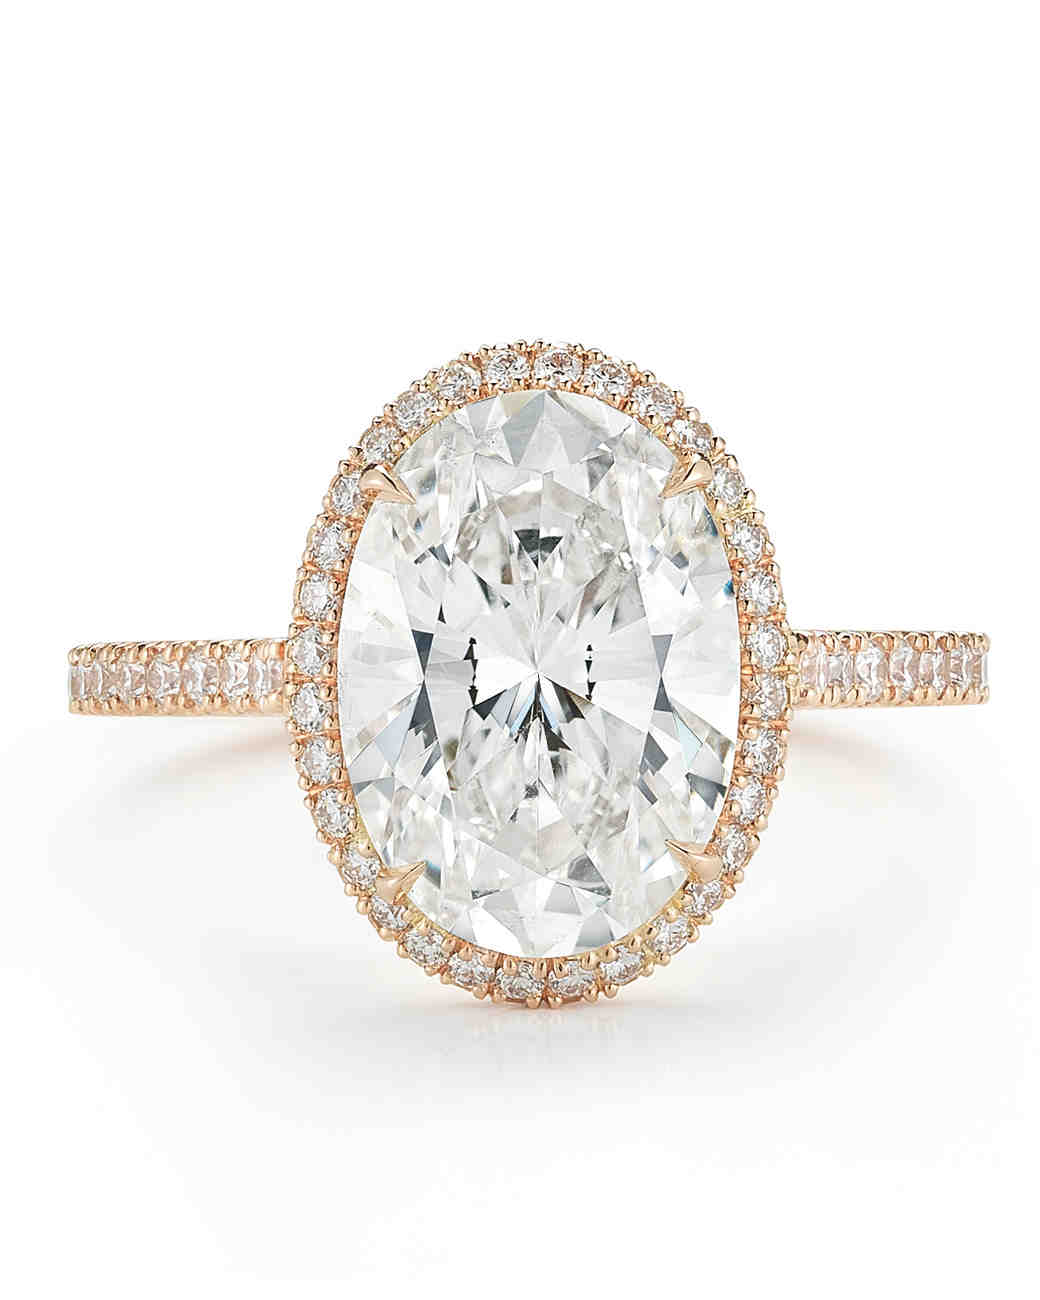 oval-cut-engagement-ring-kwiat-0714.jpg